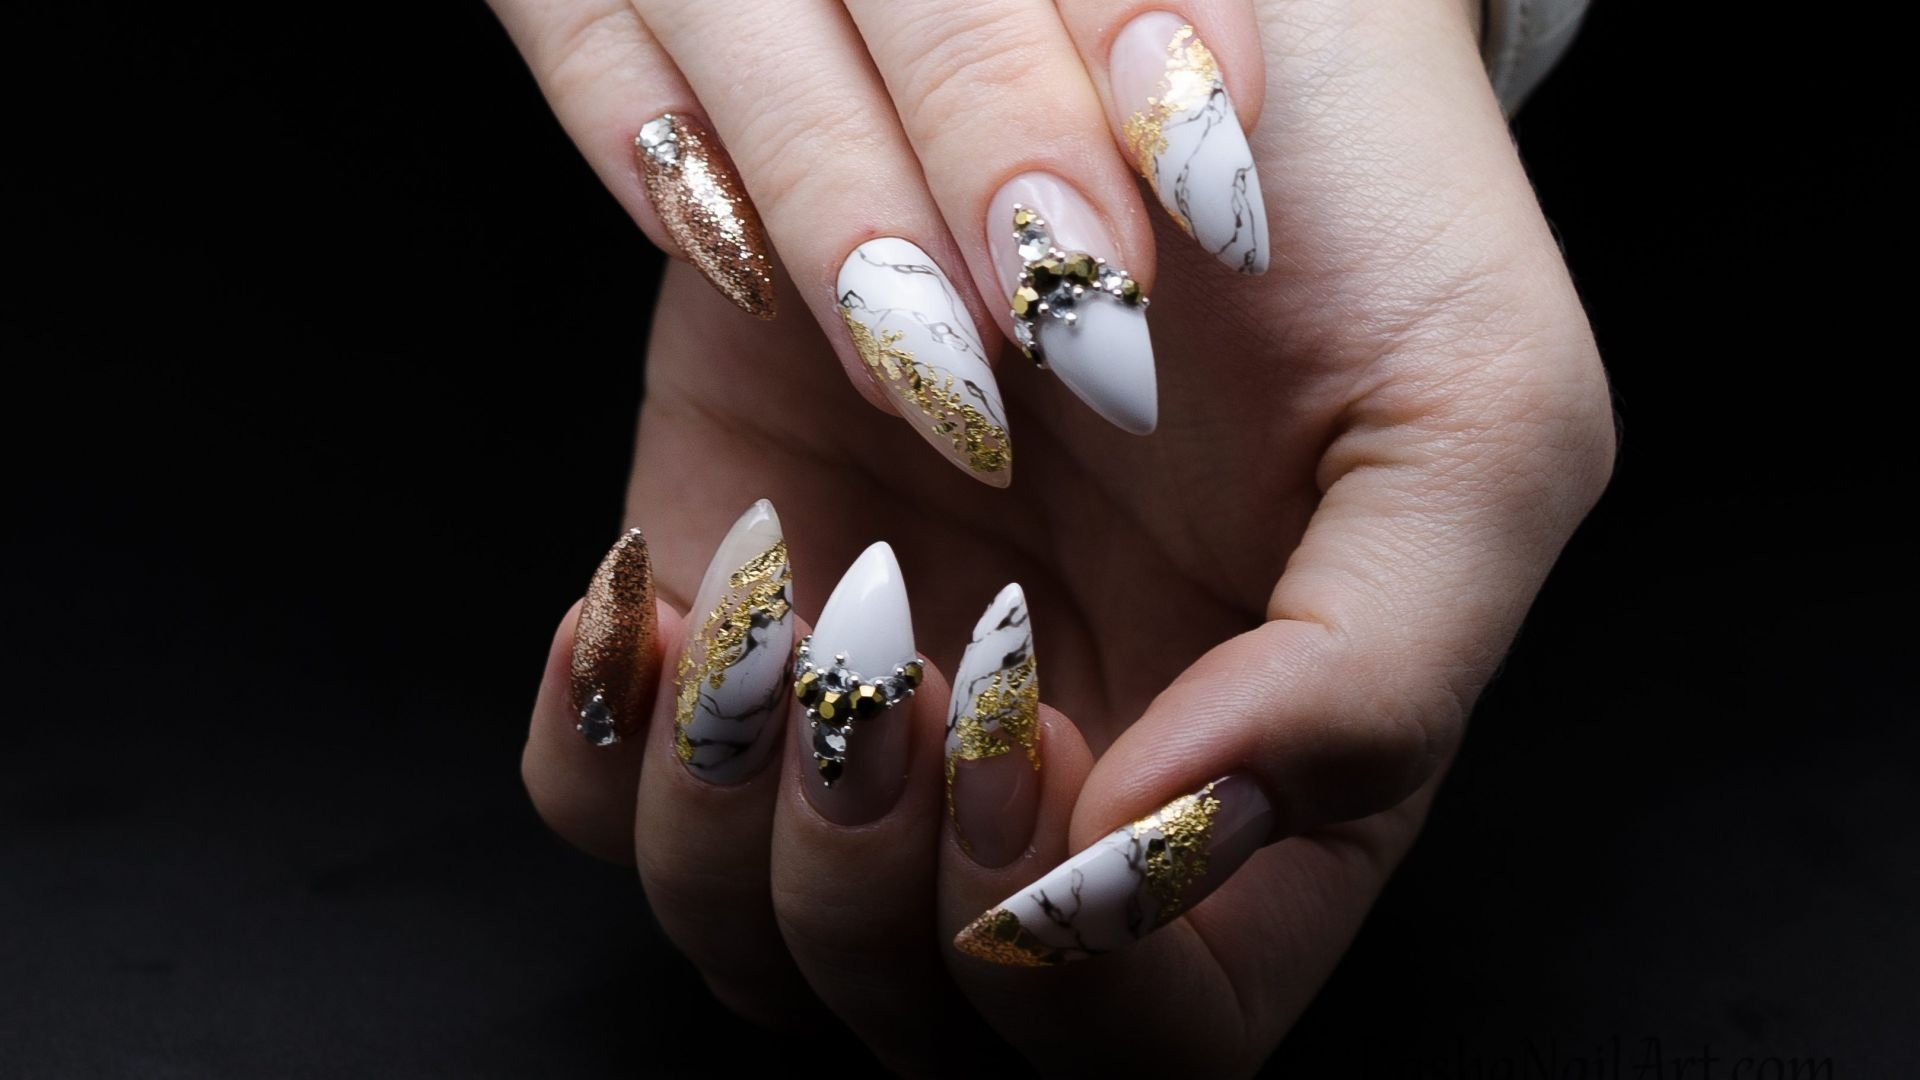 Classics nail design in the gold frame!